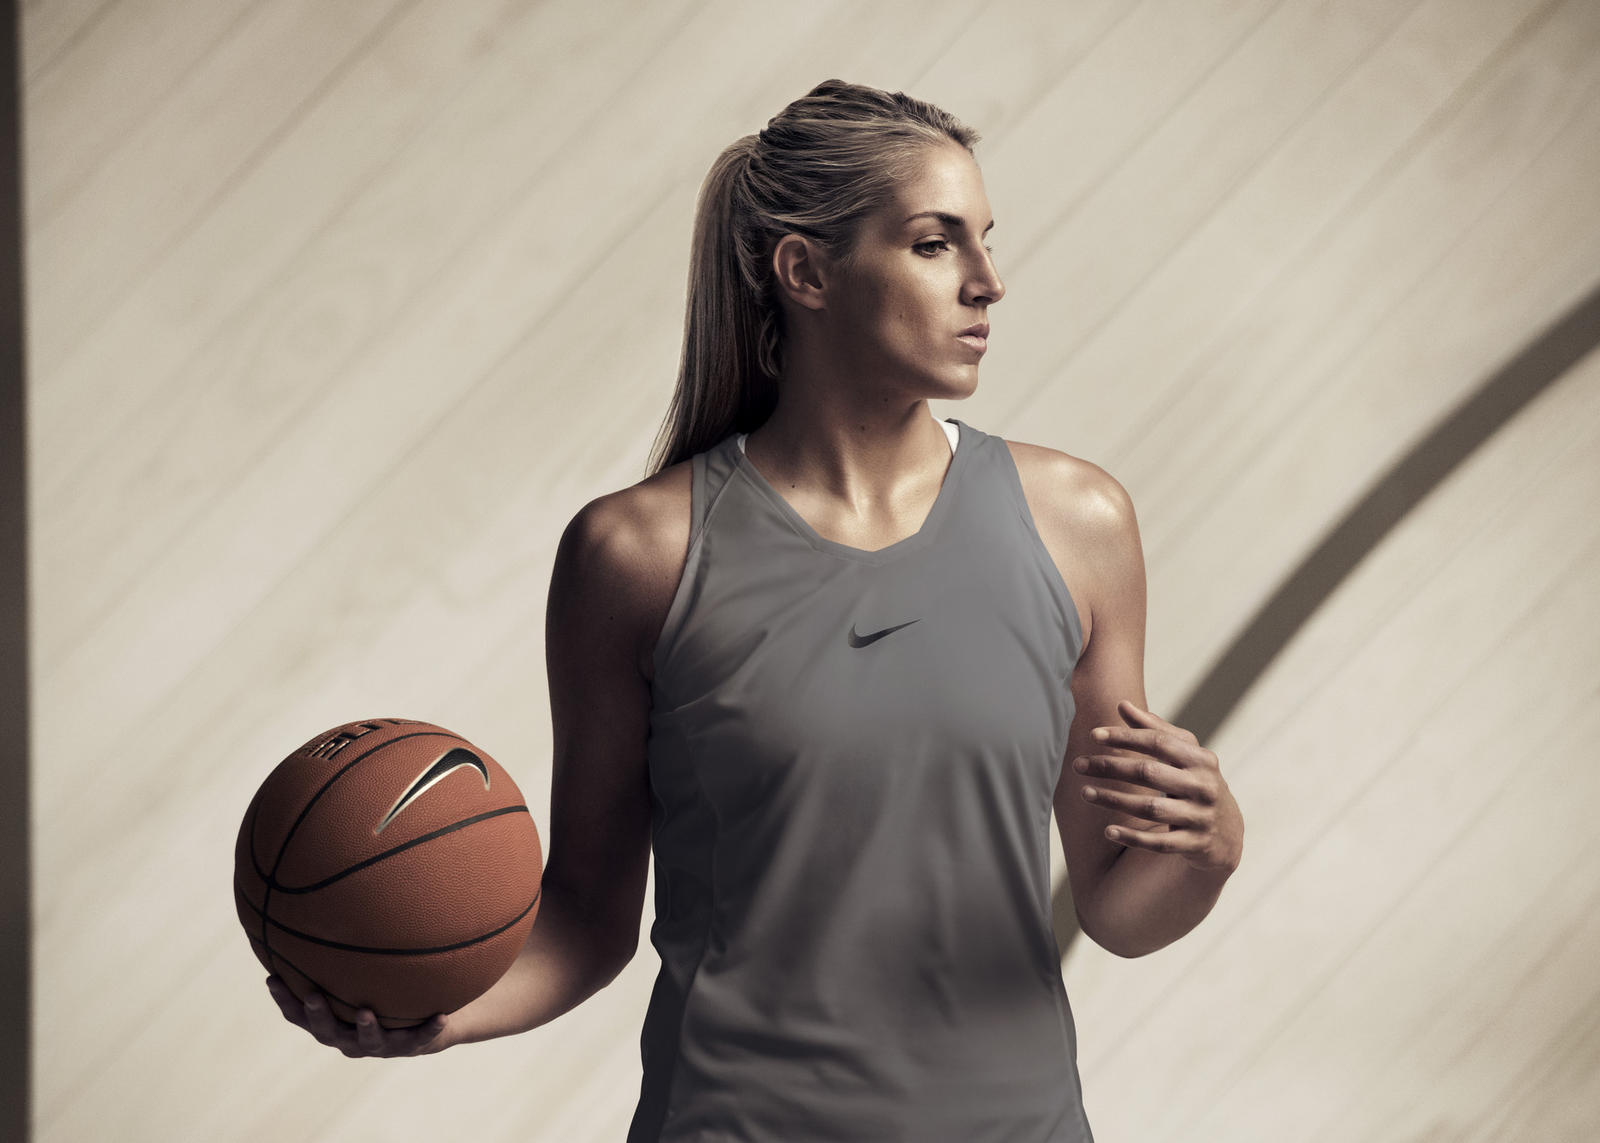 Nike's Latest Women's Basketball Collection Is Its First Actually Designed by Women